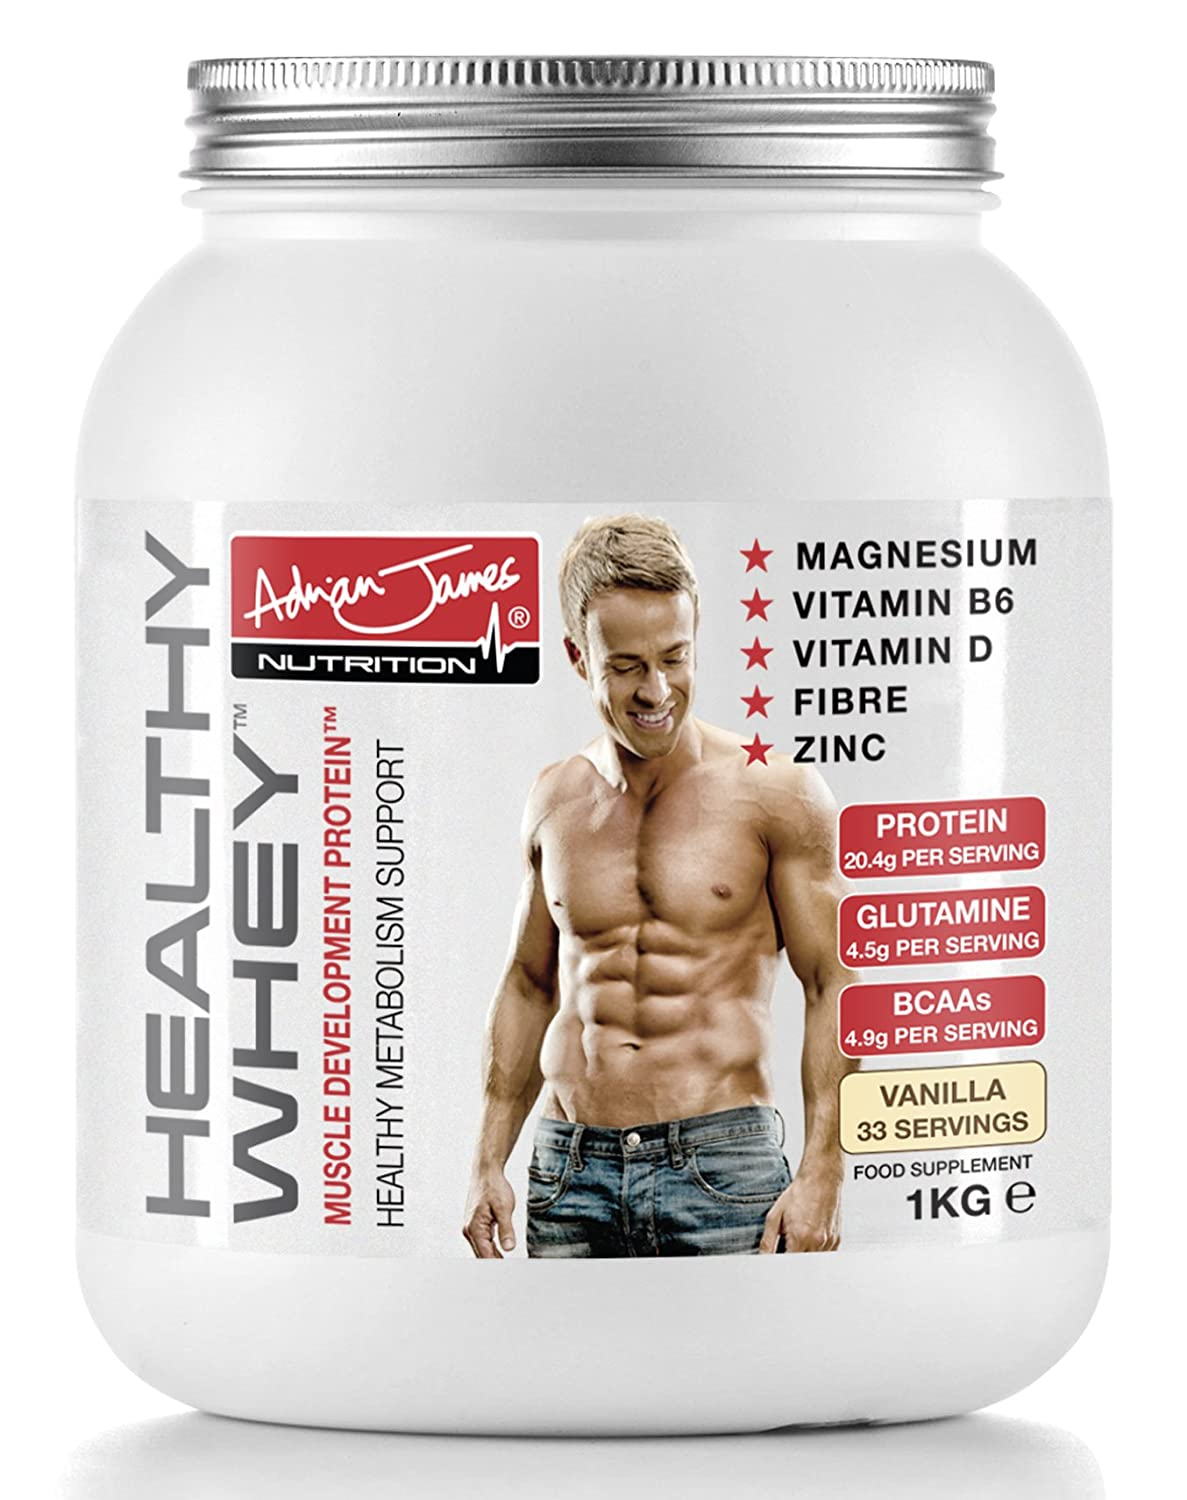 Adrian James Nutrition Healthy Whey Protein Powder Chocolate 1 Susu Ensure Kg Health Personal Care